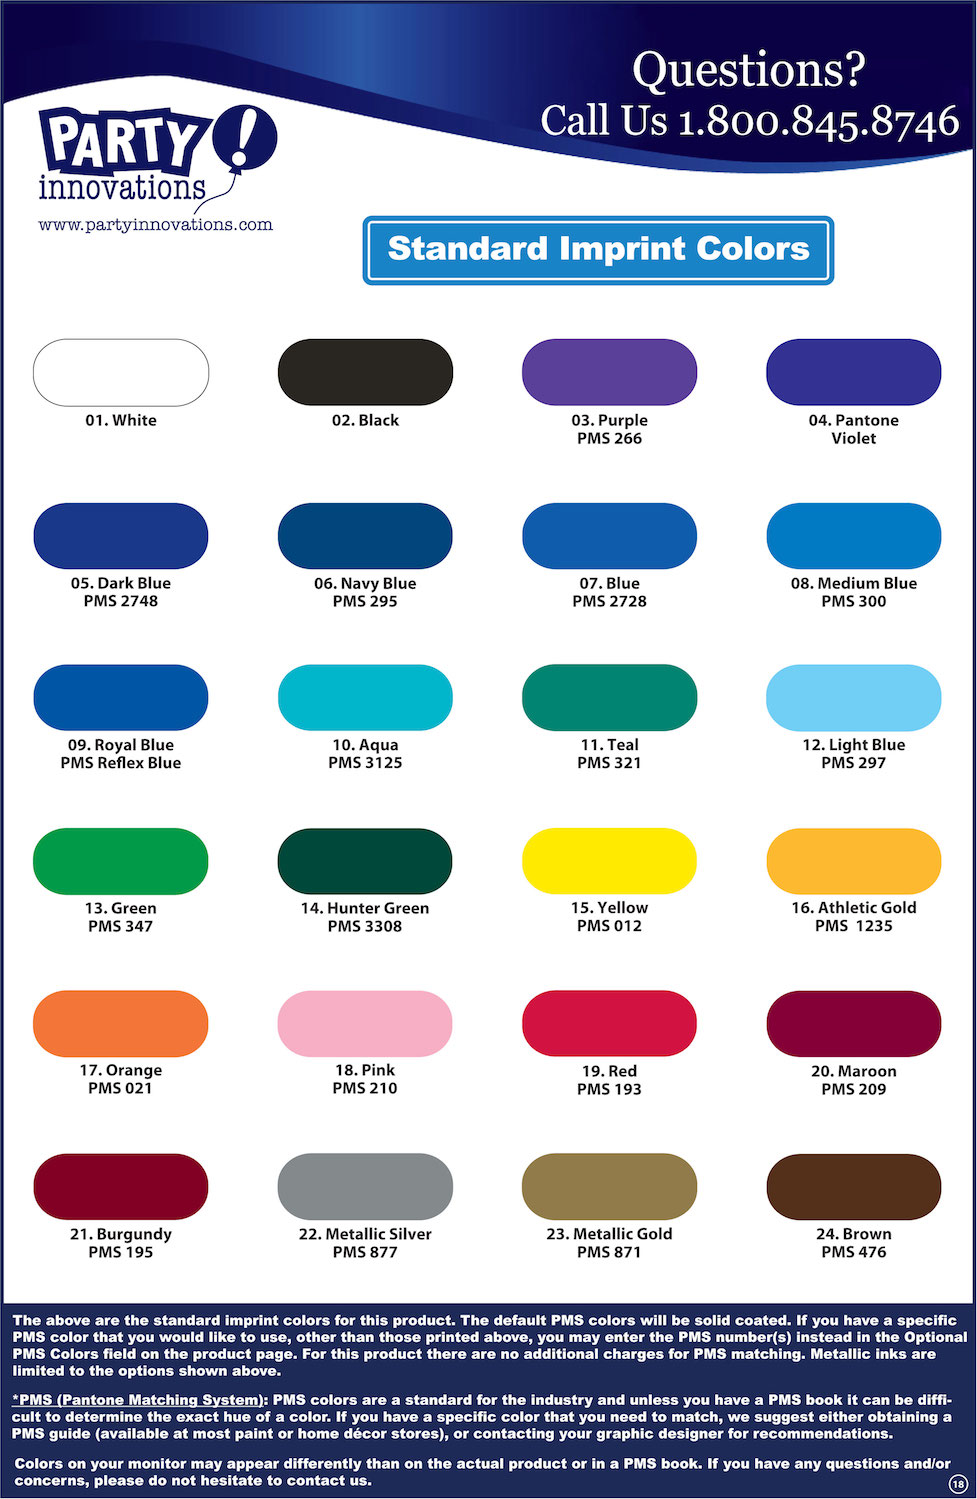 Water Bottle Imprint Colors Reference Sheet